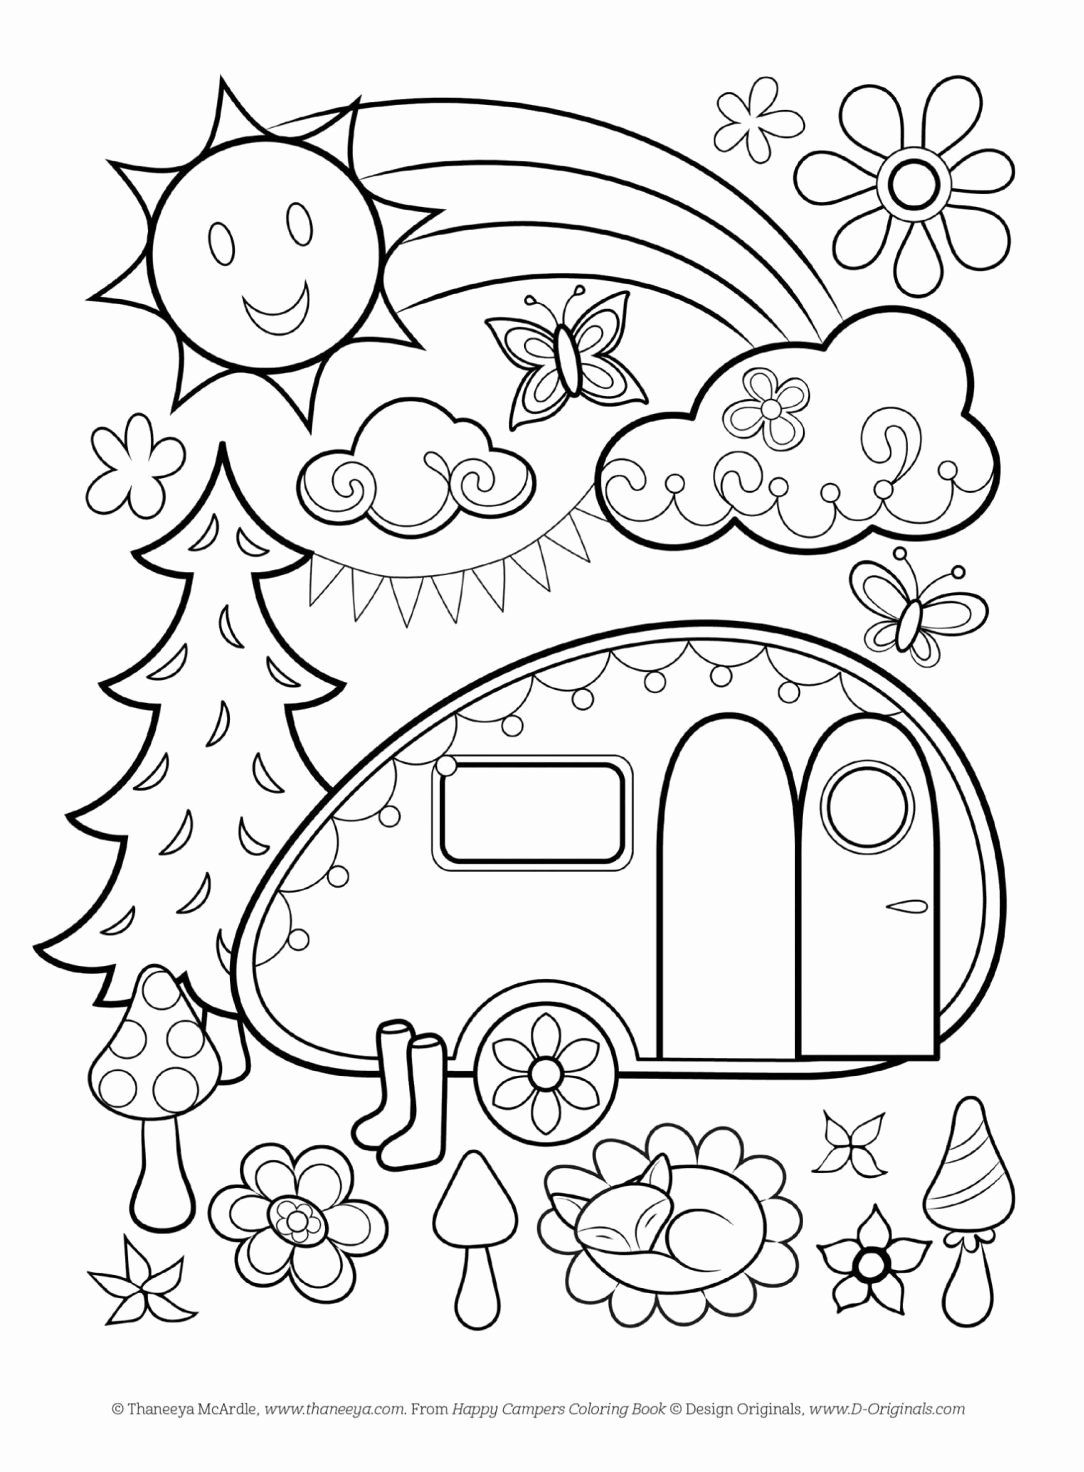 Transport Coloring Book Pdf Fresh Coloring Ideas Holiday Coloring Pages For Preschool Camping Coloring Pages Free Coloring Pages Summer Coloring Pages